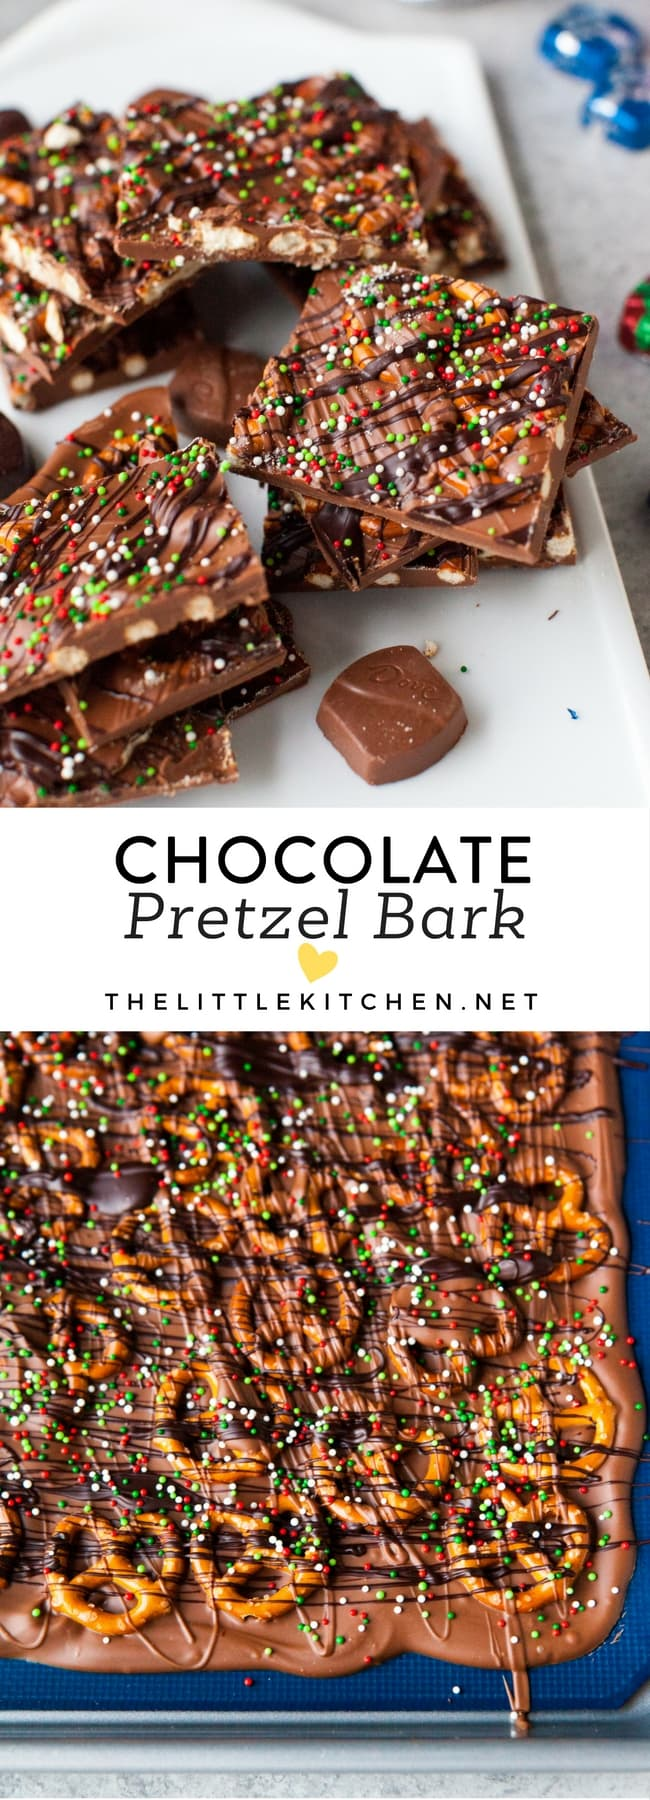 Chocolate Pretzel Bark from thelittlekitchen.net